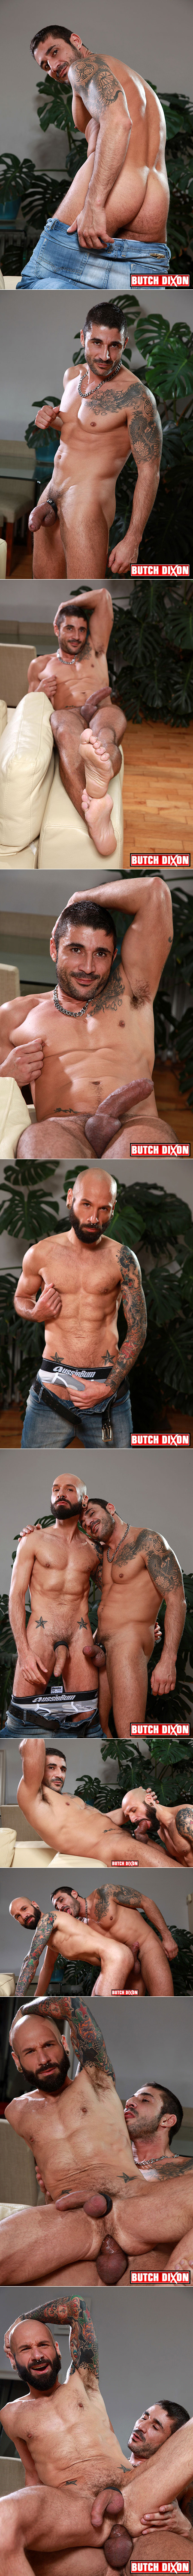 Well-hung Spaniard fucking a horny tattooed Frenchman bareback.